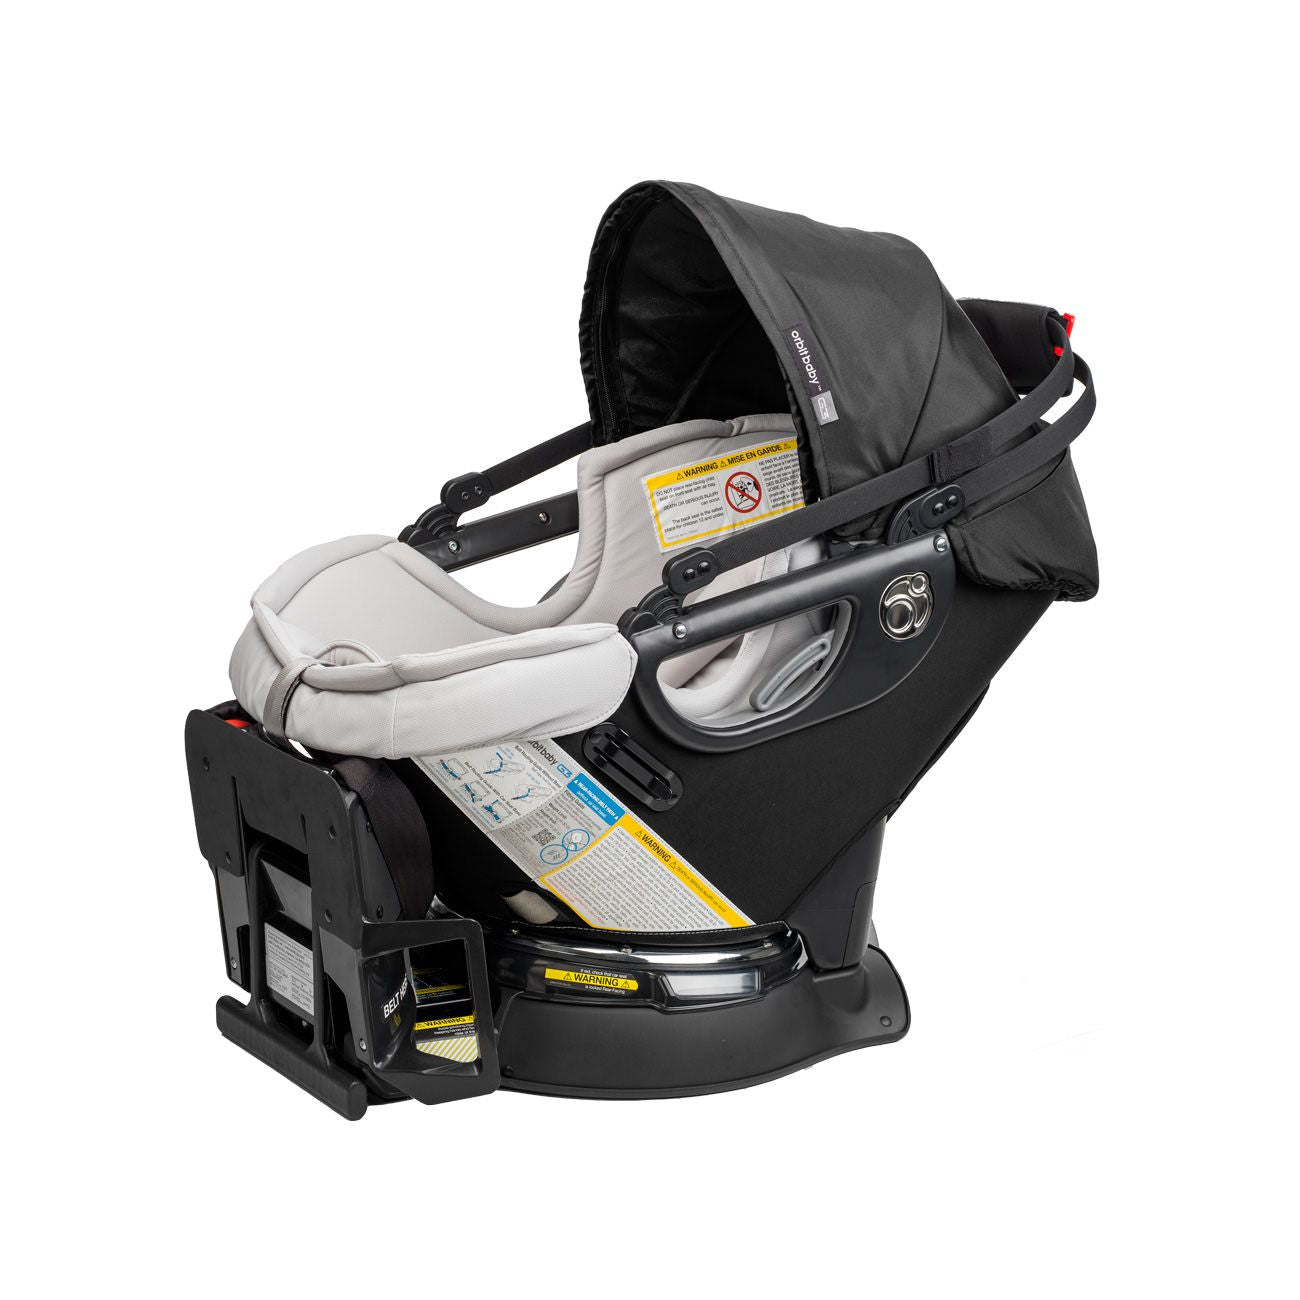 Car Seat, Features to Look For When Buying a Baby Car Seat